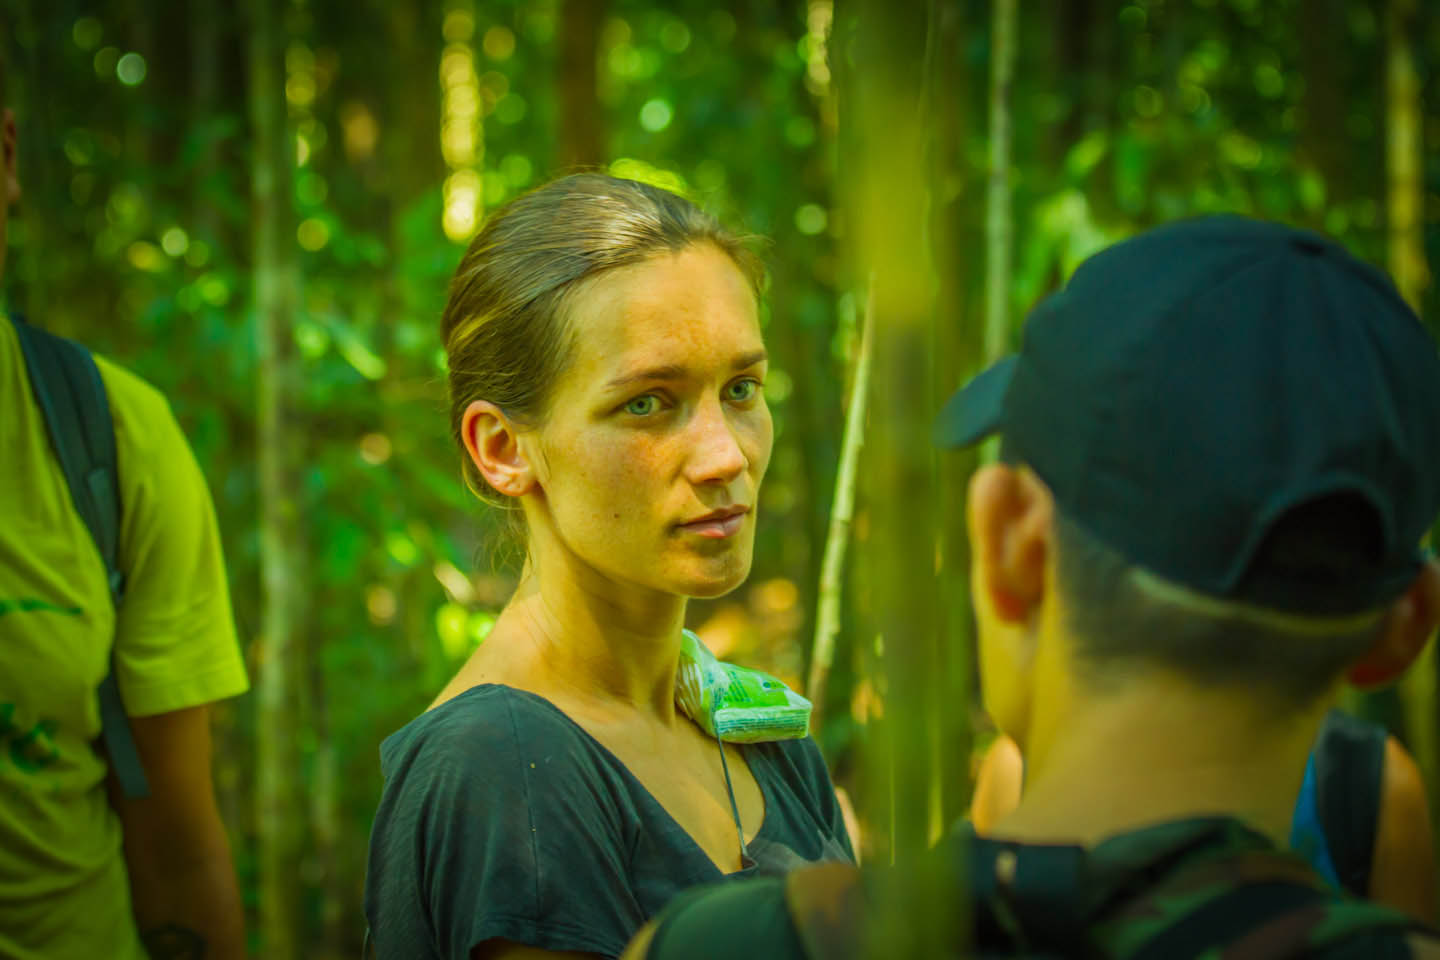 Anita Kisiala with independent jungle track guide Eru in Bukit Lawang Sumatra